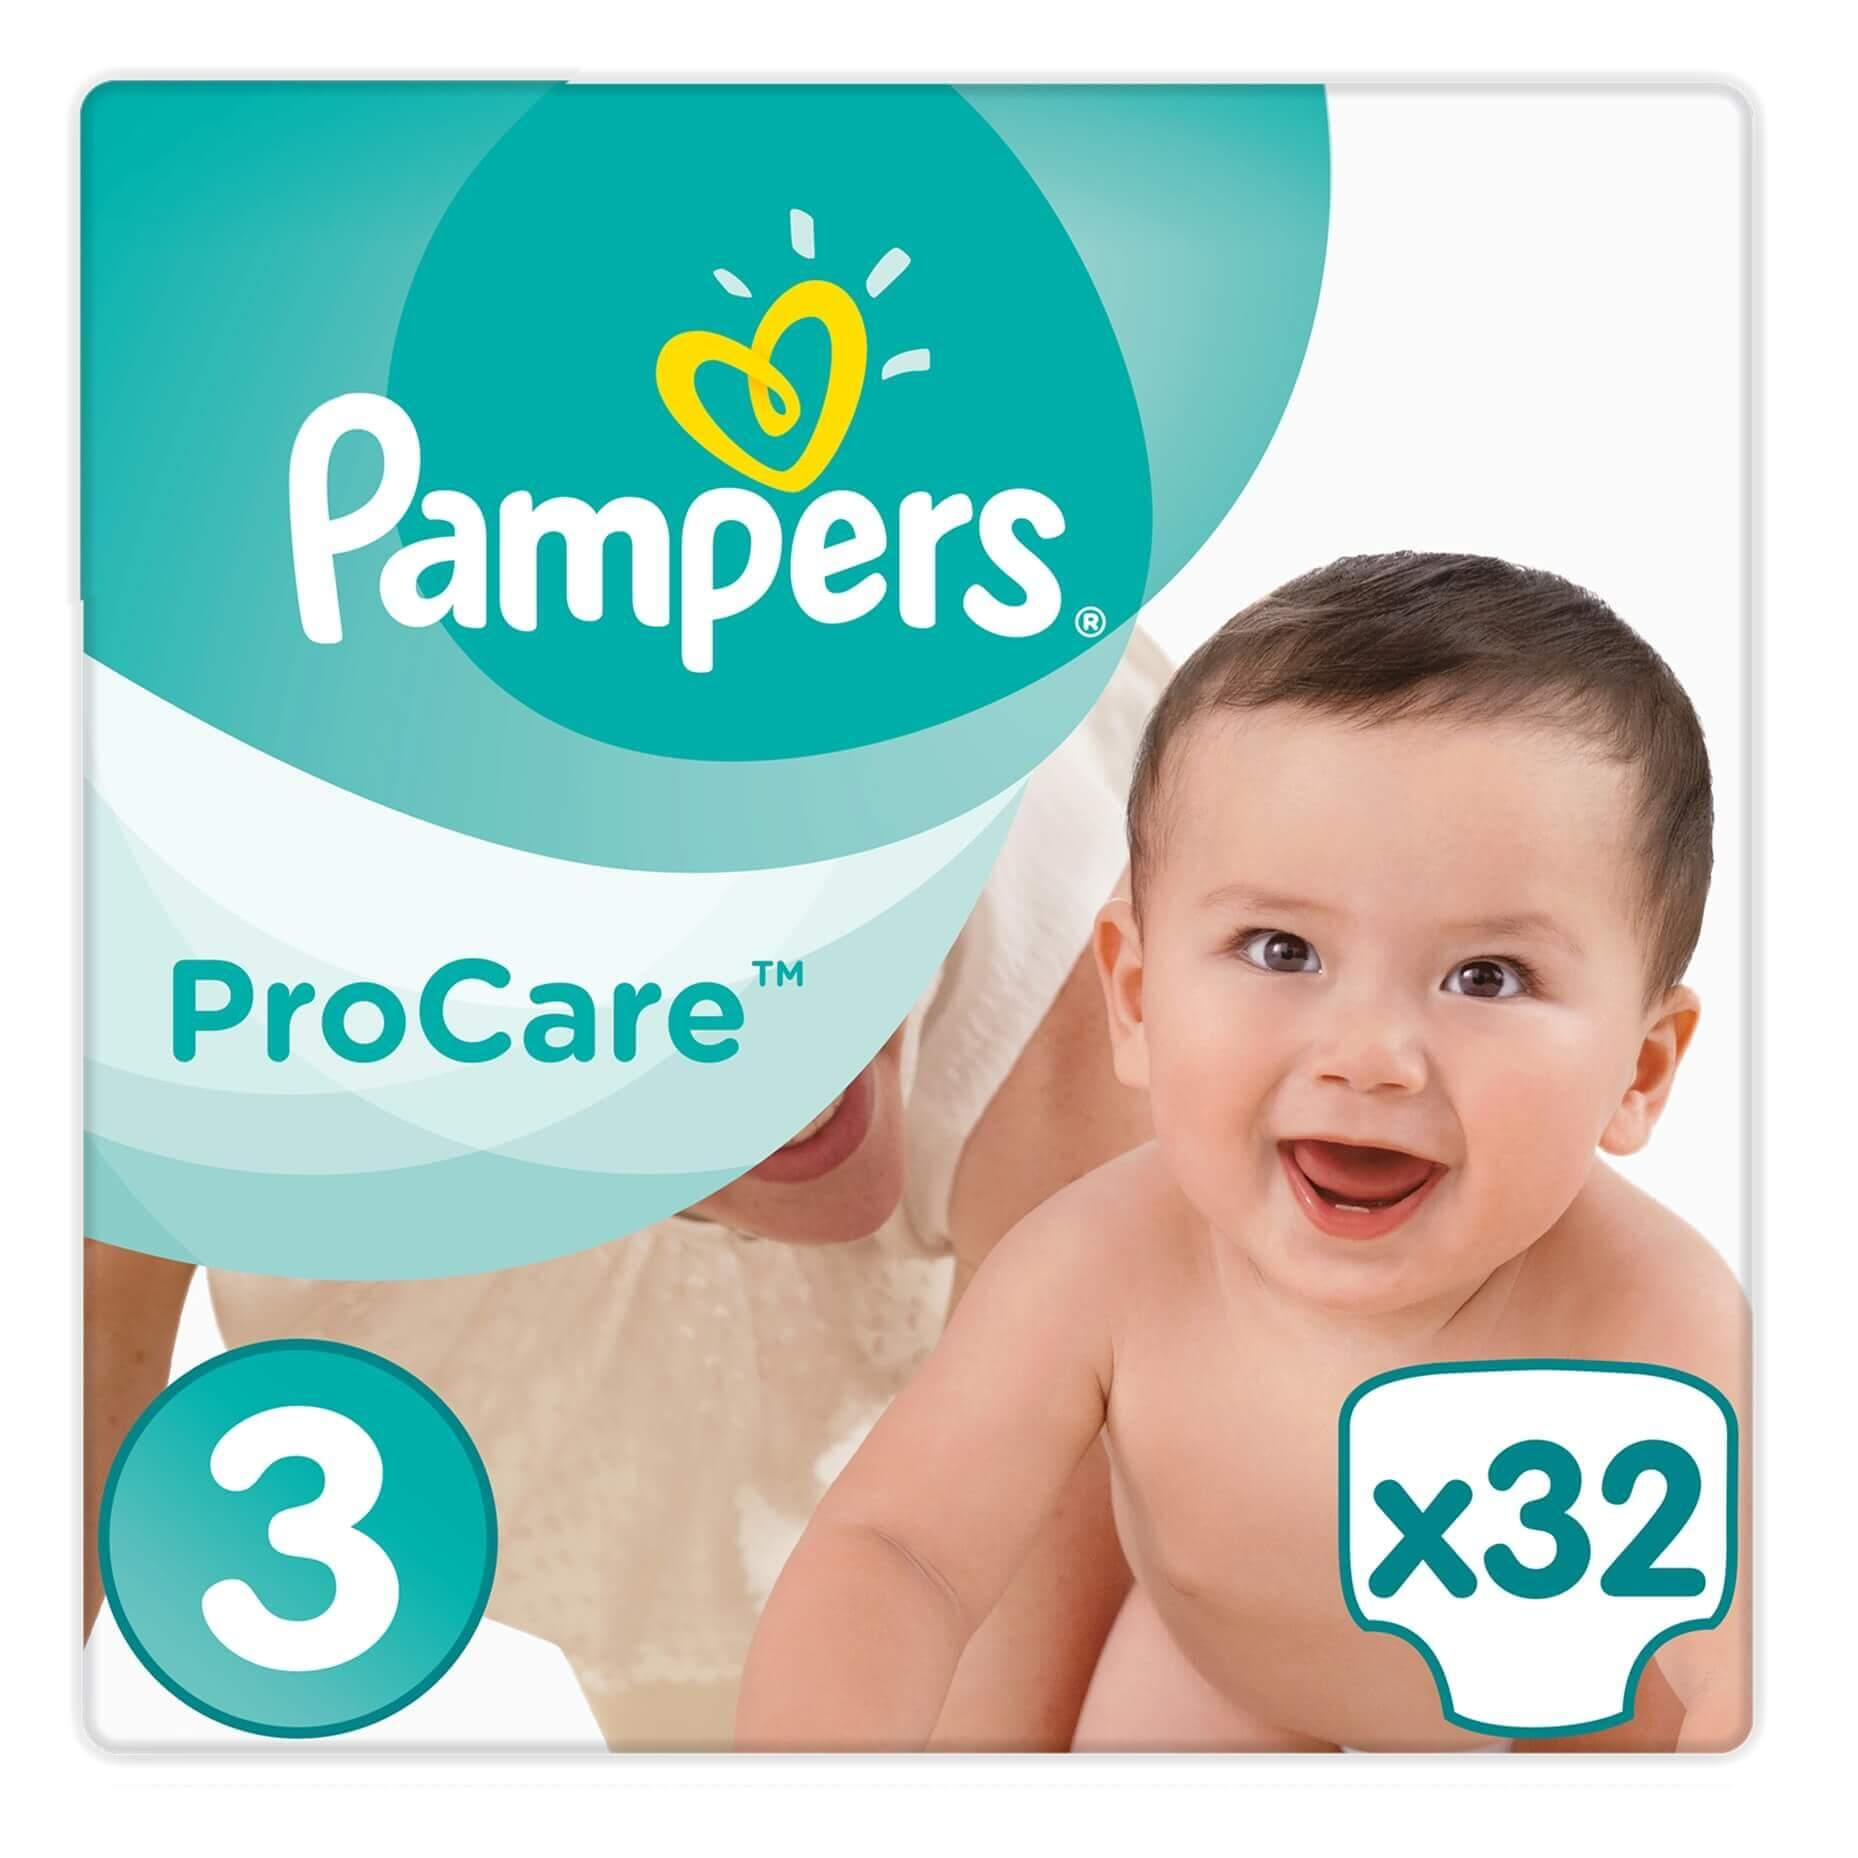 Pampers ProCare Premium Protection No3 (5-9kg) 32 πάνες μητέρα παιδί   περιποίηση για το μωρό   πάνες για το μωρό